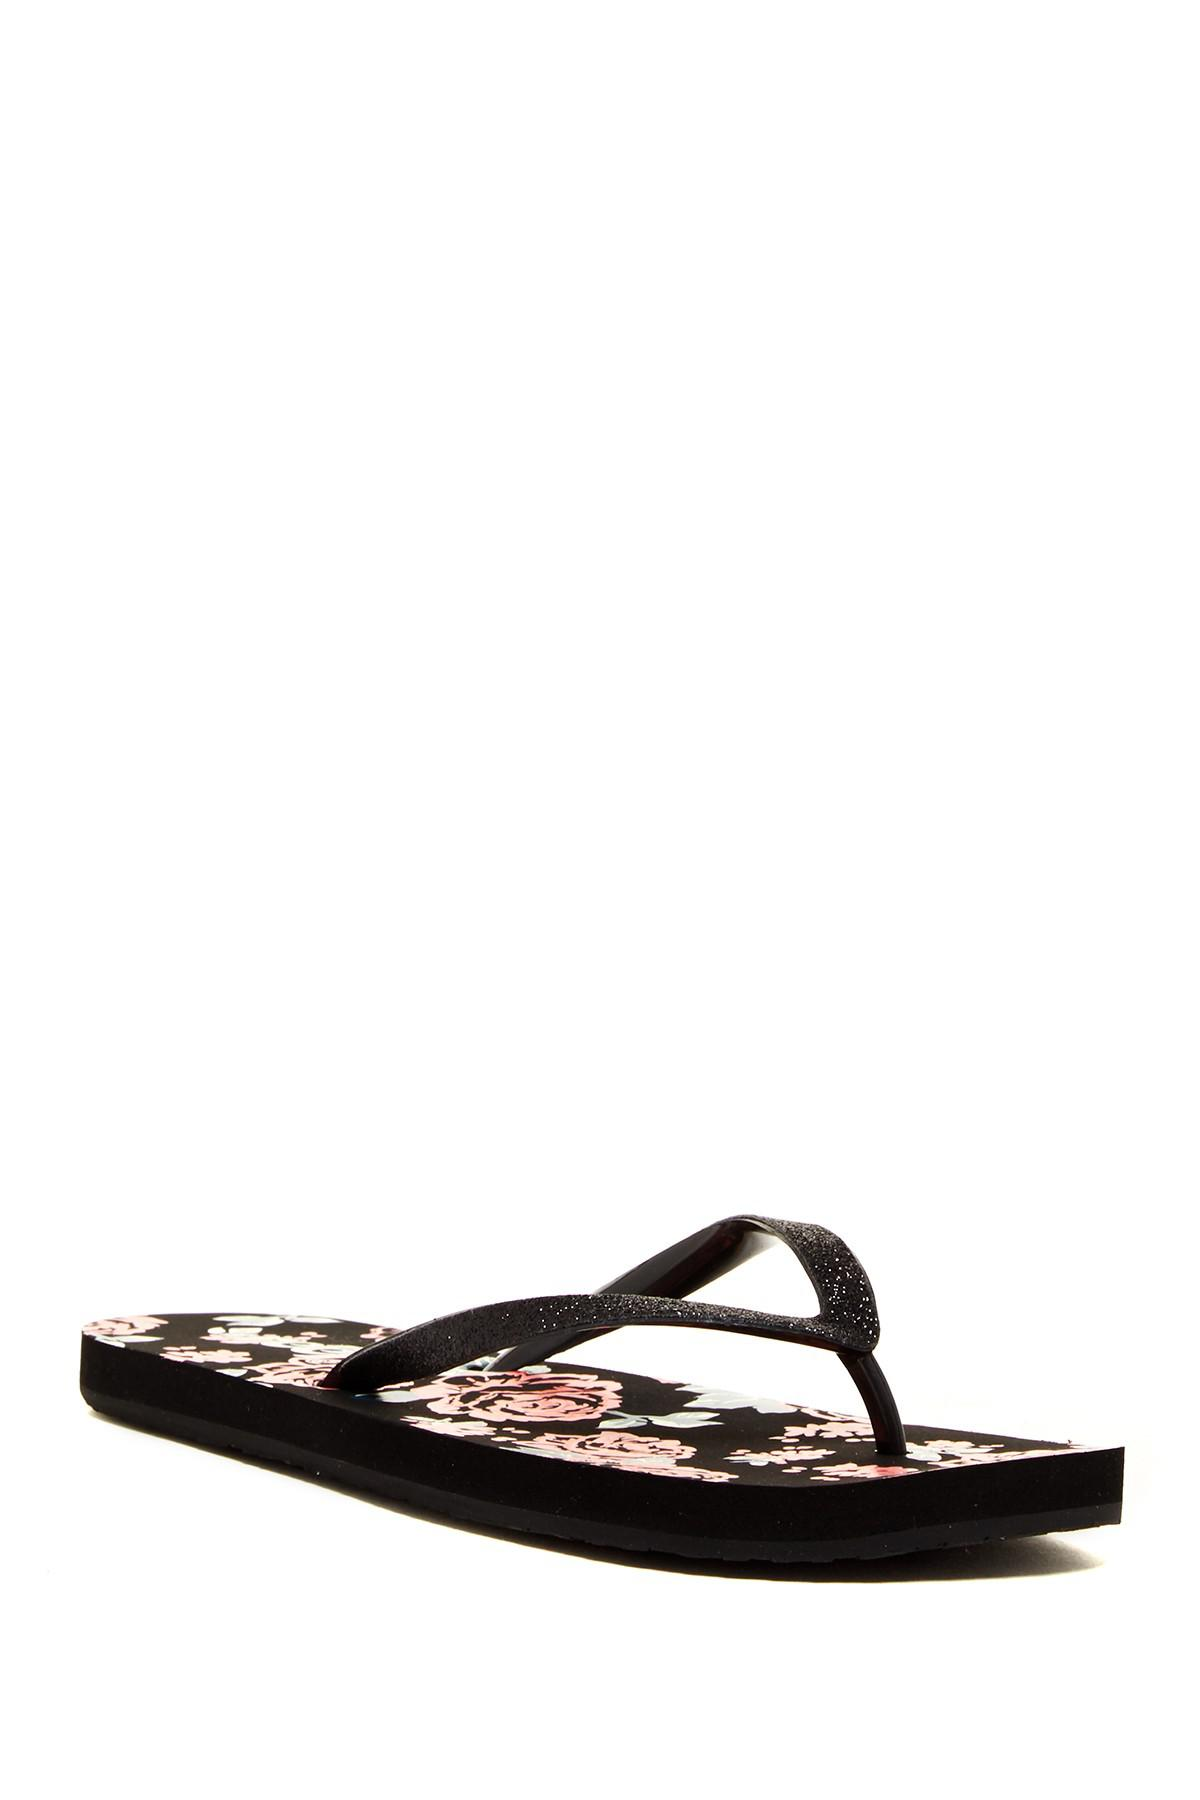 abea97b6b3965 Lyst - Reef Stargazer Prints Thong Sandal in Black